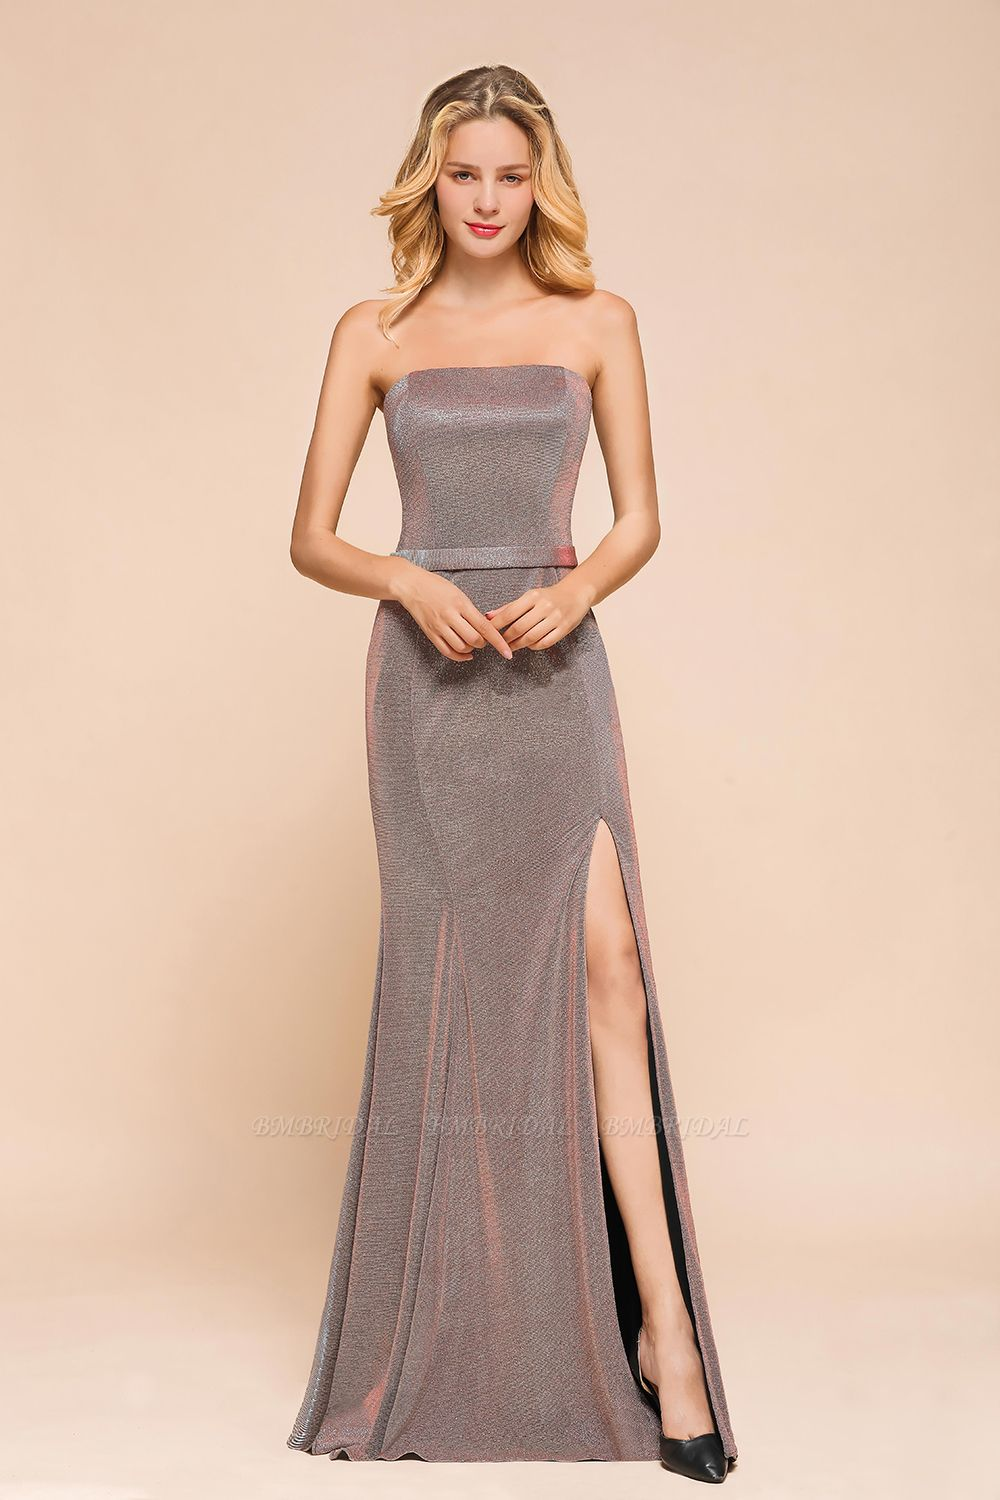 BMbridal Stunning Strapless Long Prom Dress With Split Online